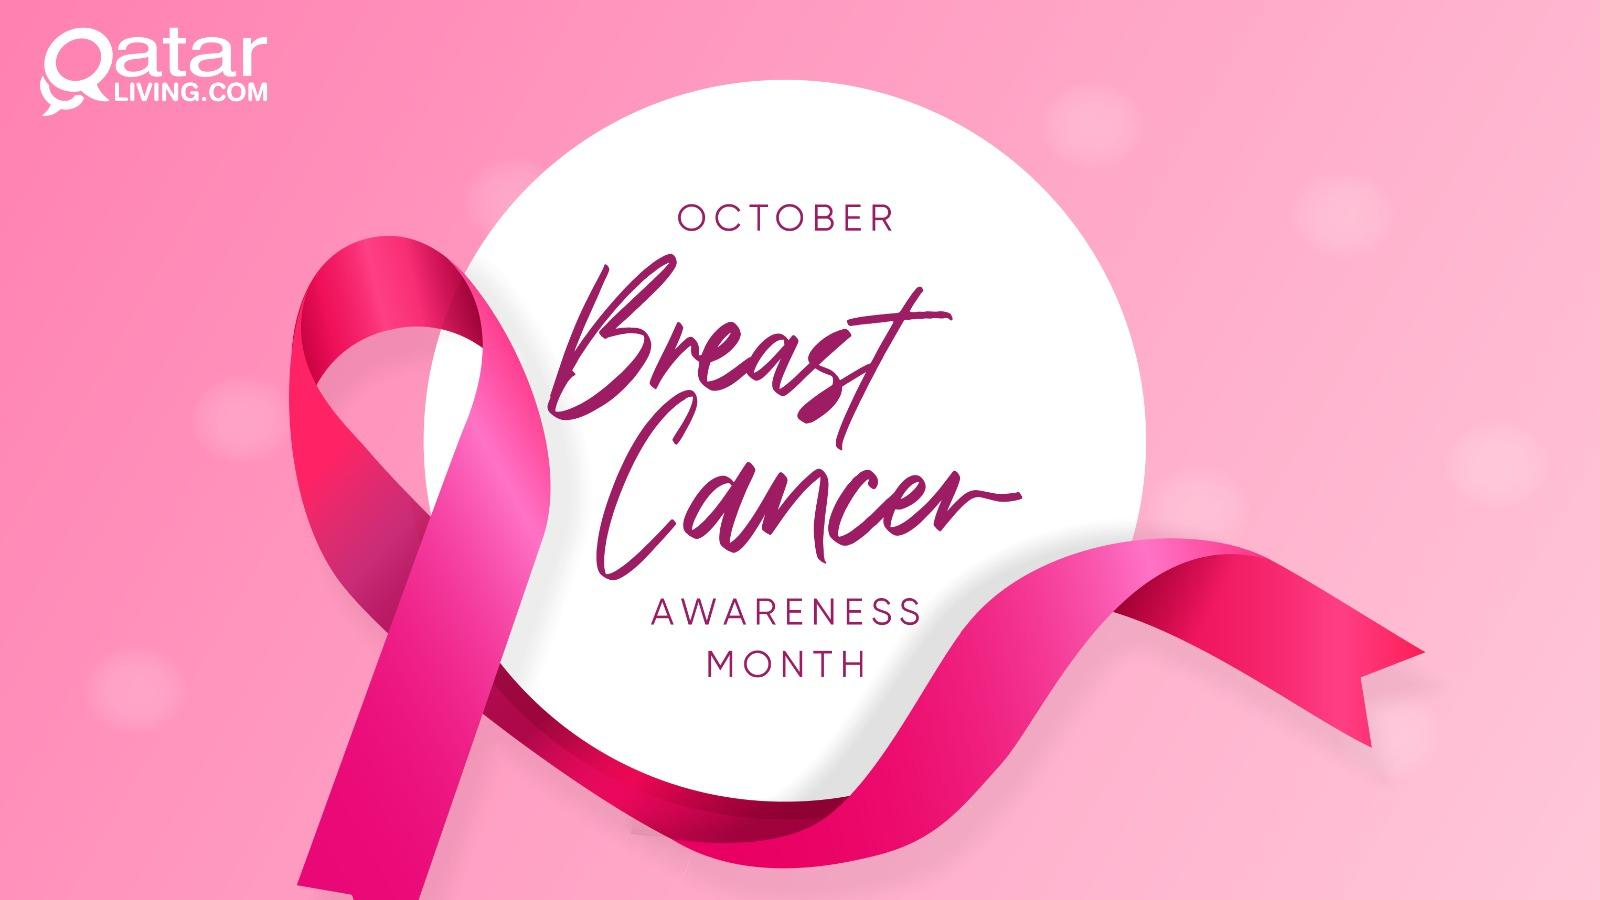 A guide to Breast Cancer Awareness Month in Qatar